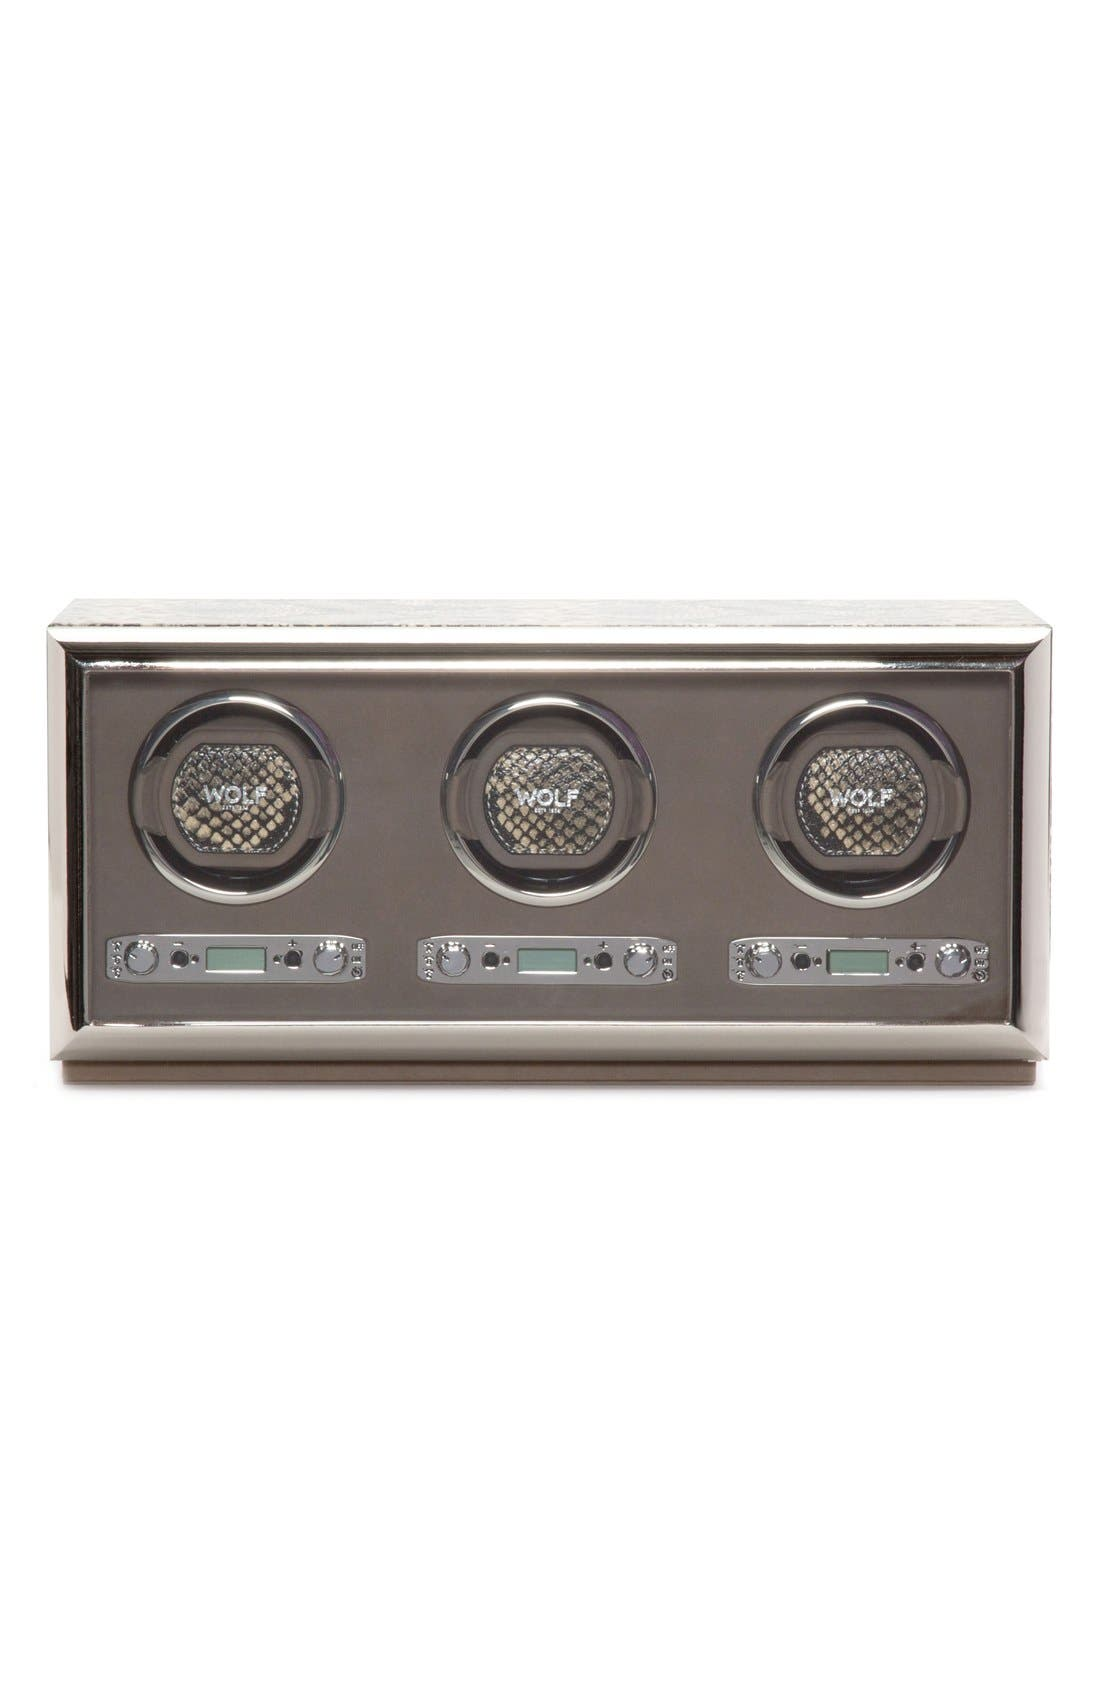 Main Image - Wolf Exotic Triple Watch Winder